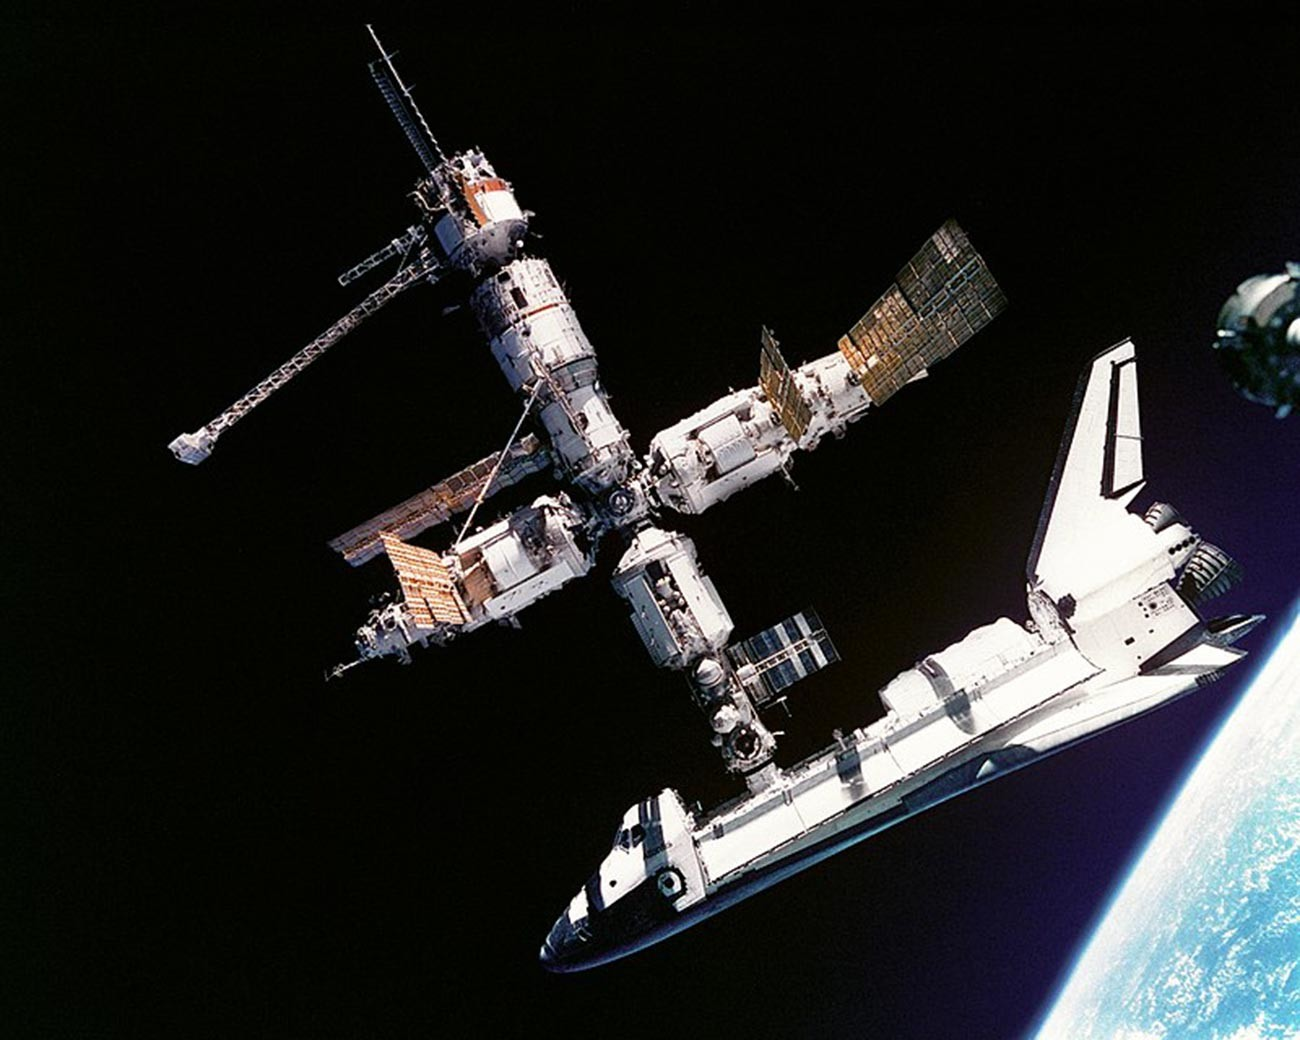 This view of the Space Shuttle Atlantis still connected to Russia's Mir Space Station was photographed by the Mir-19 crew on July 4, 1995.